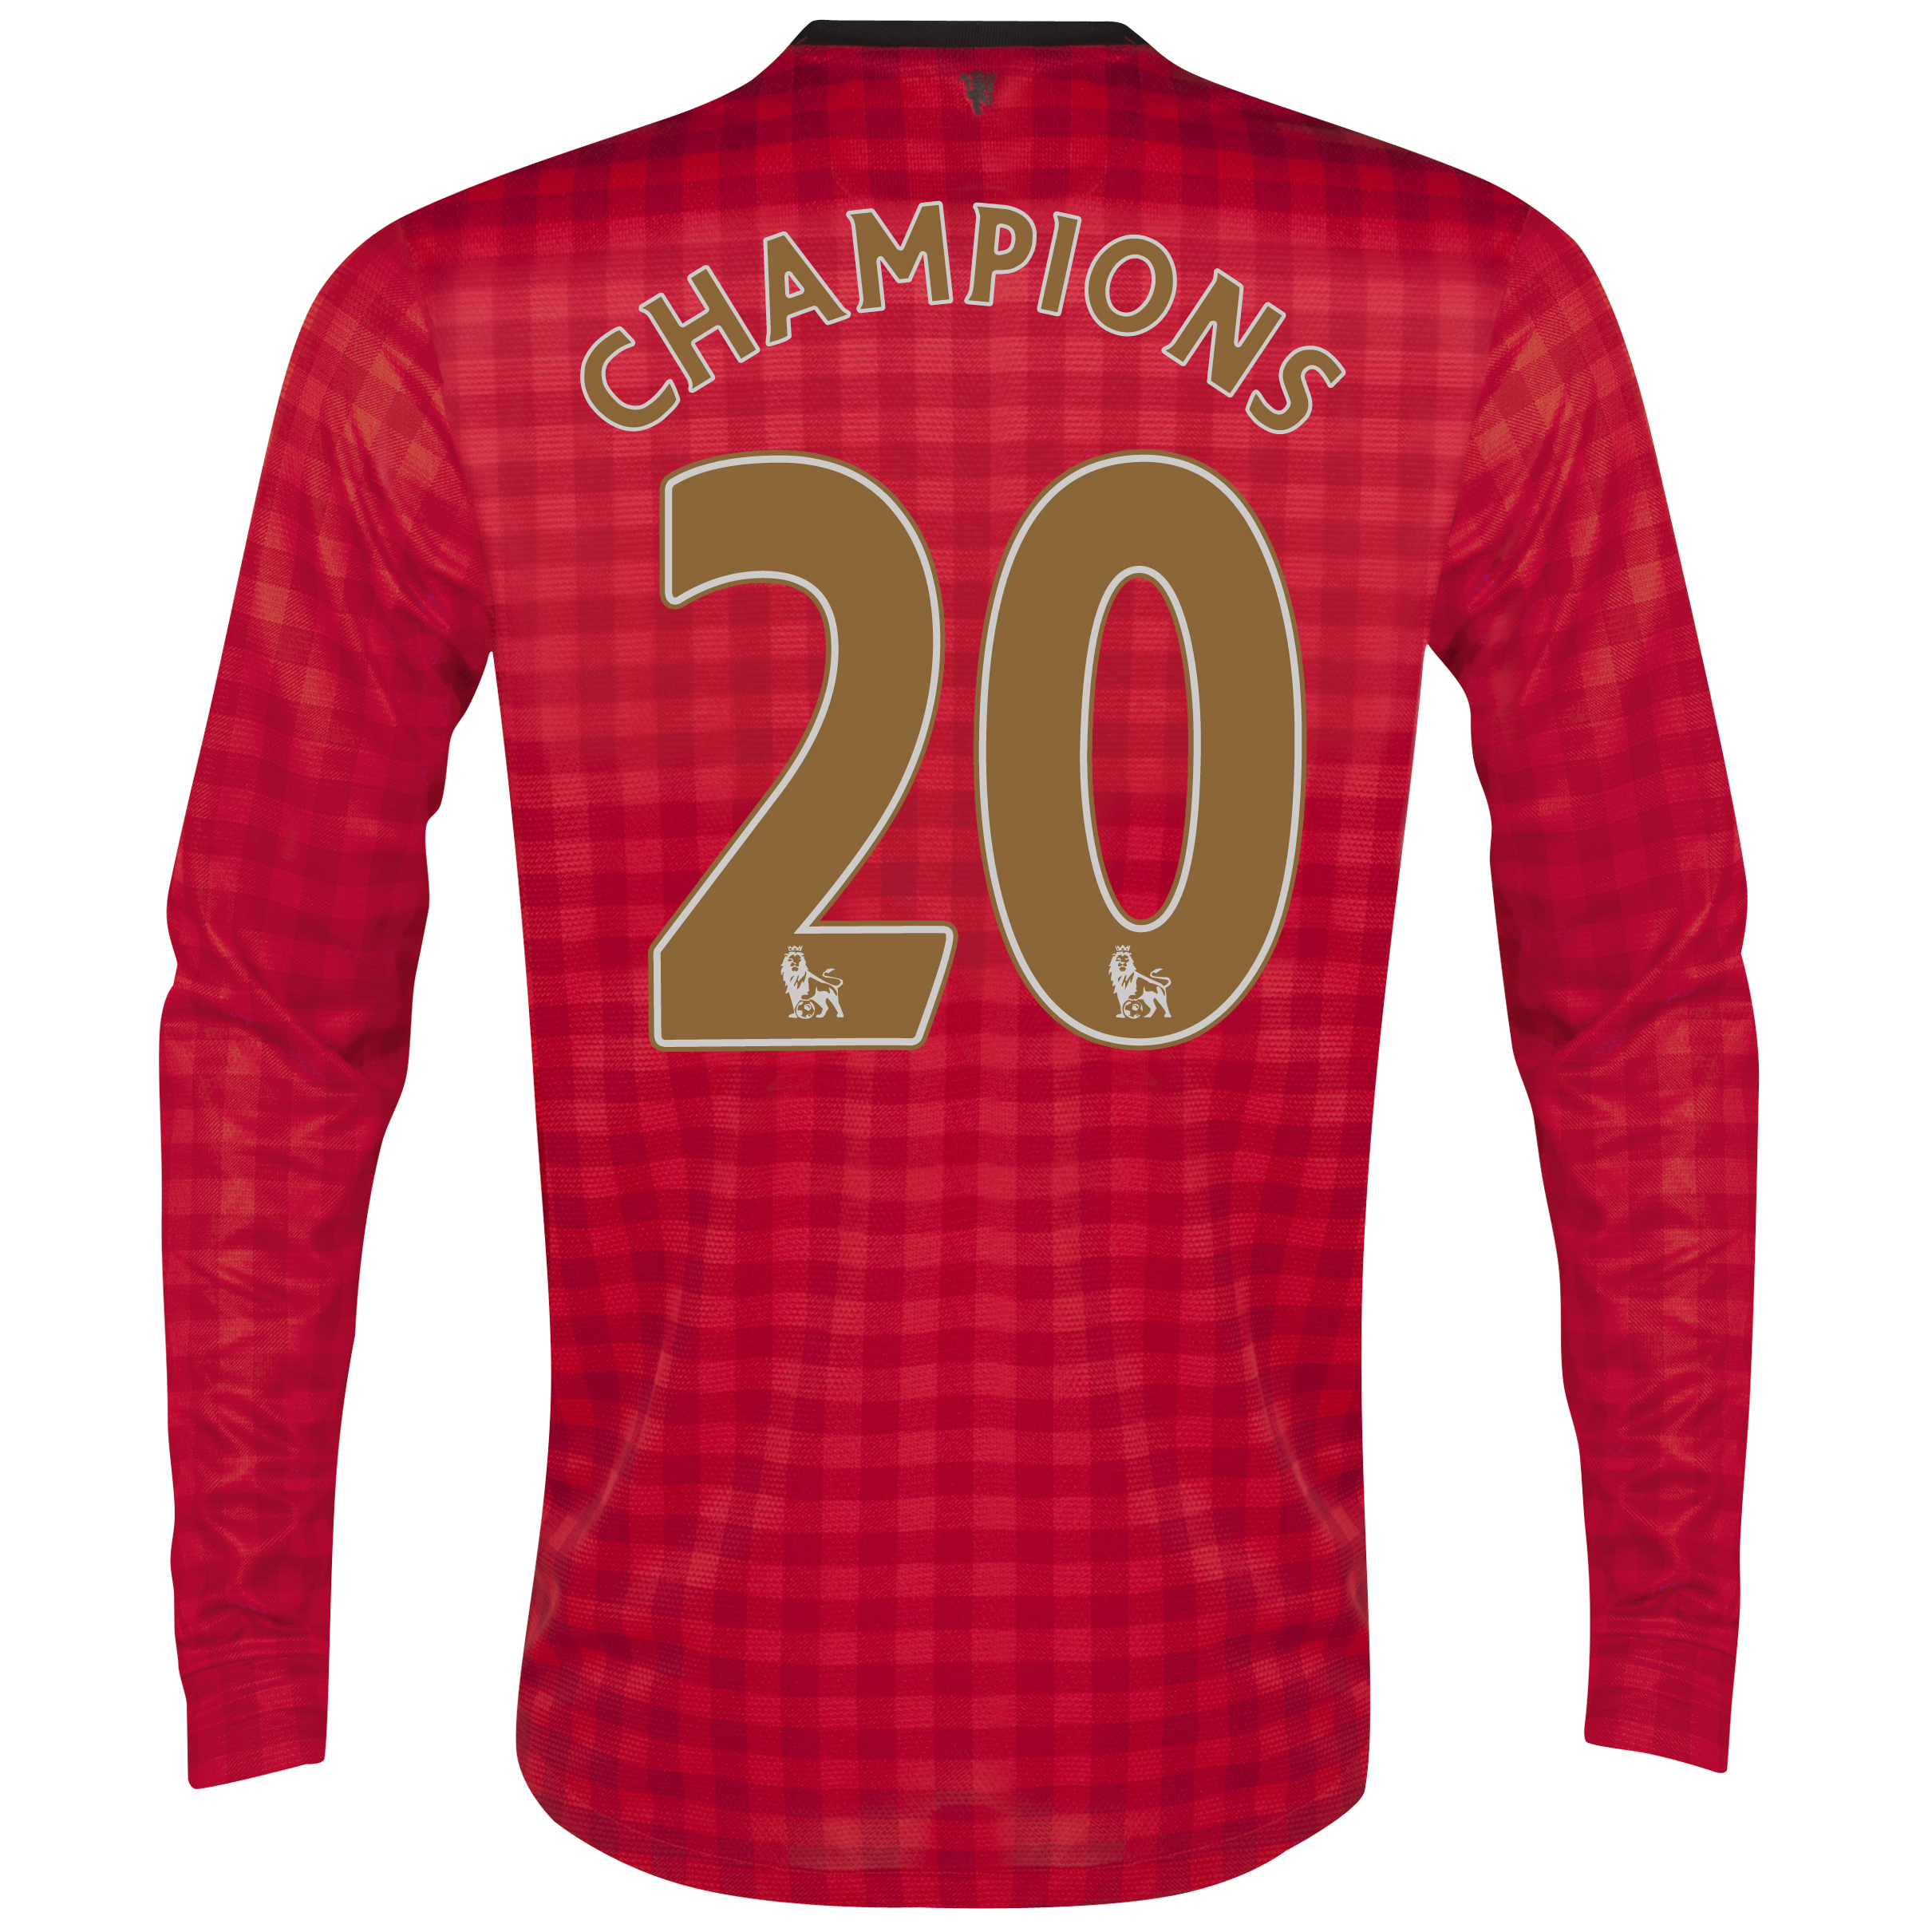 Manchester United Home Shirt 2012/13 - Long Sleeved  - Kids with Champions 20 printing